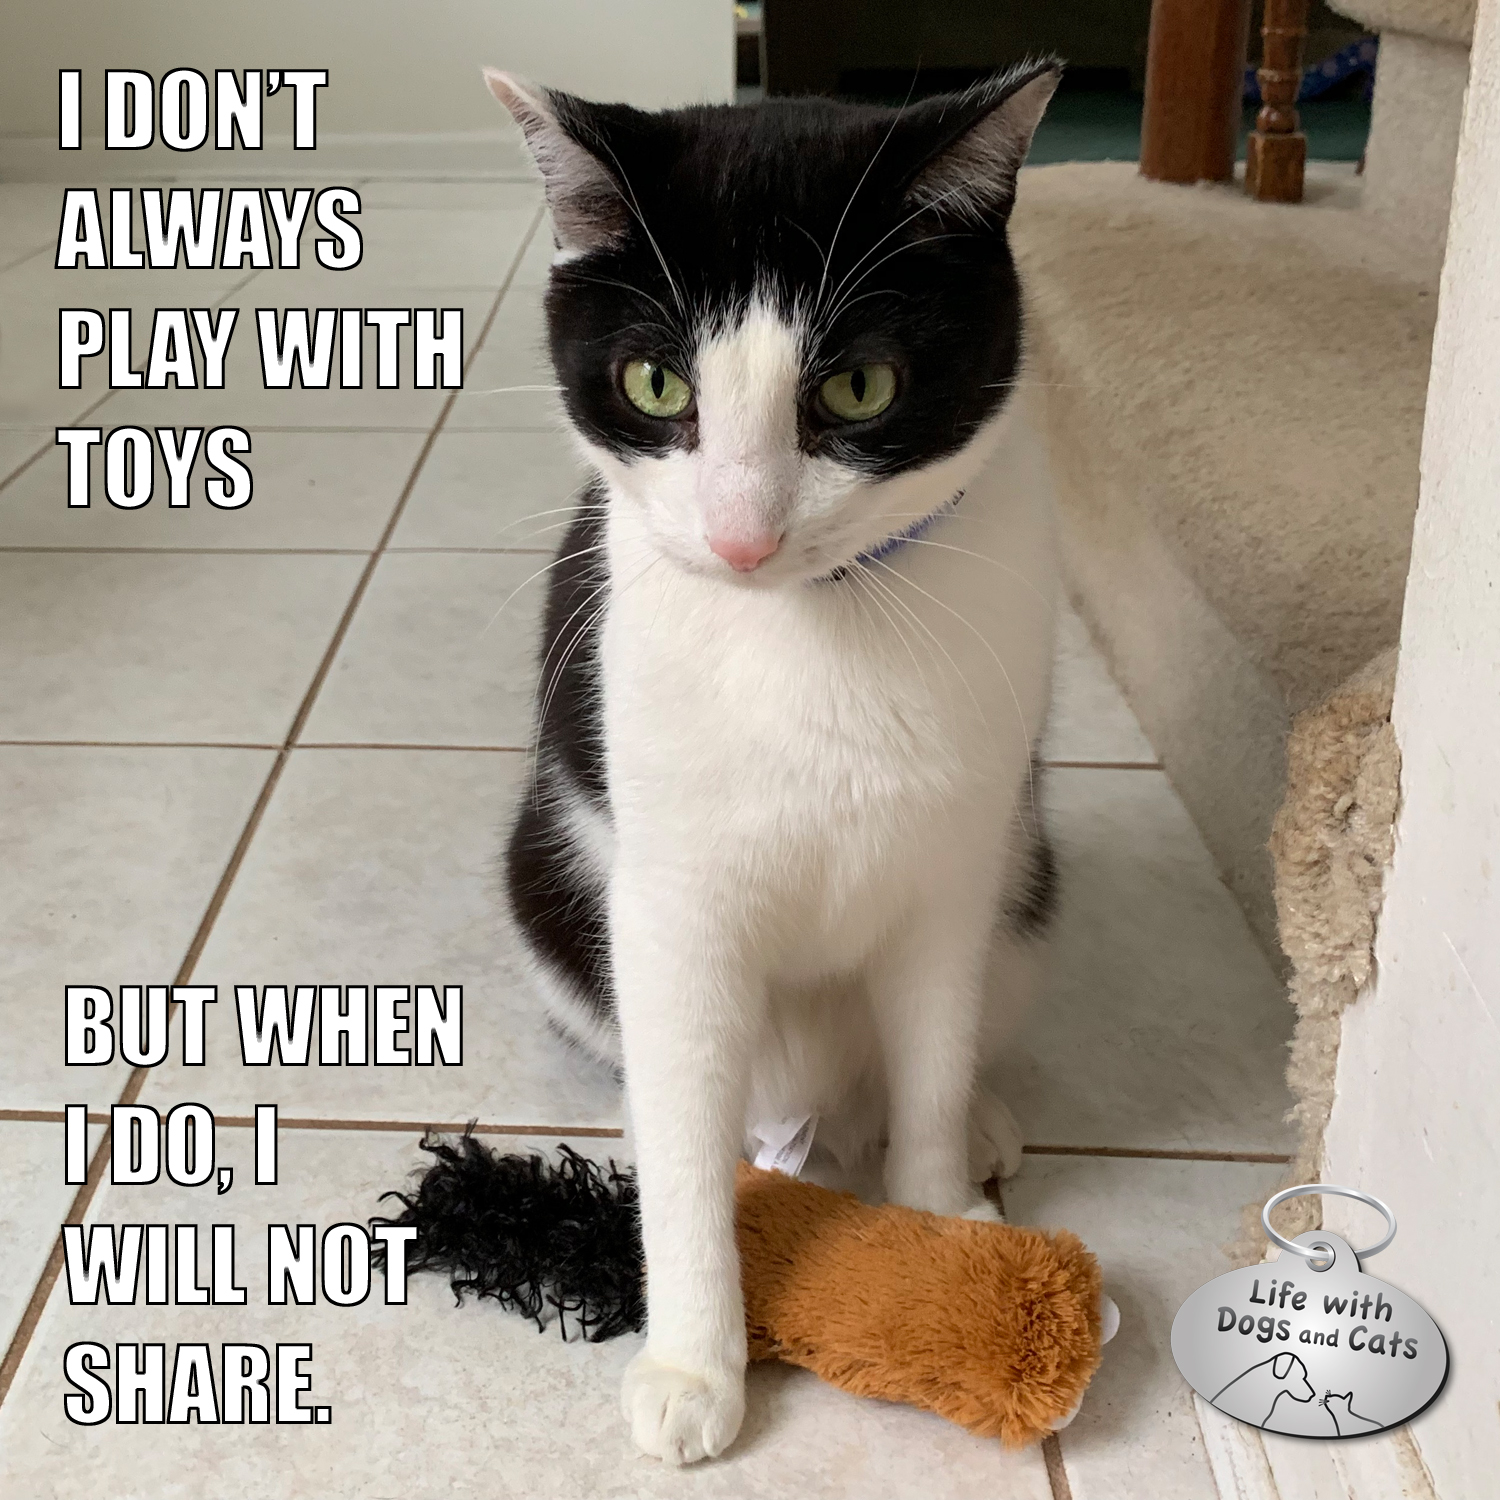 I don't always play with toys, but when I do, I will not share.